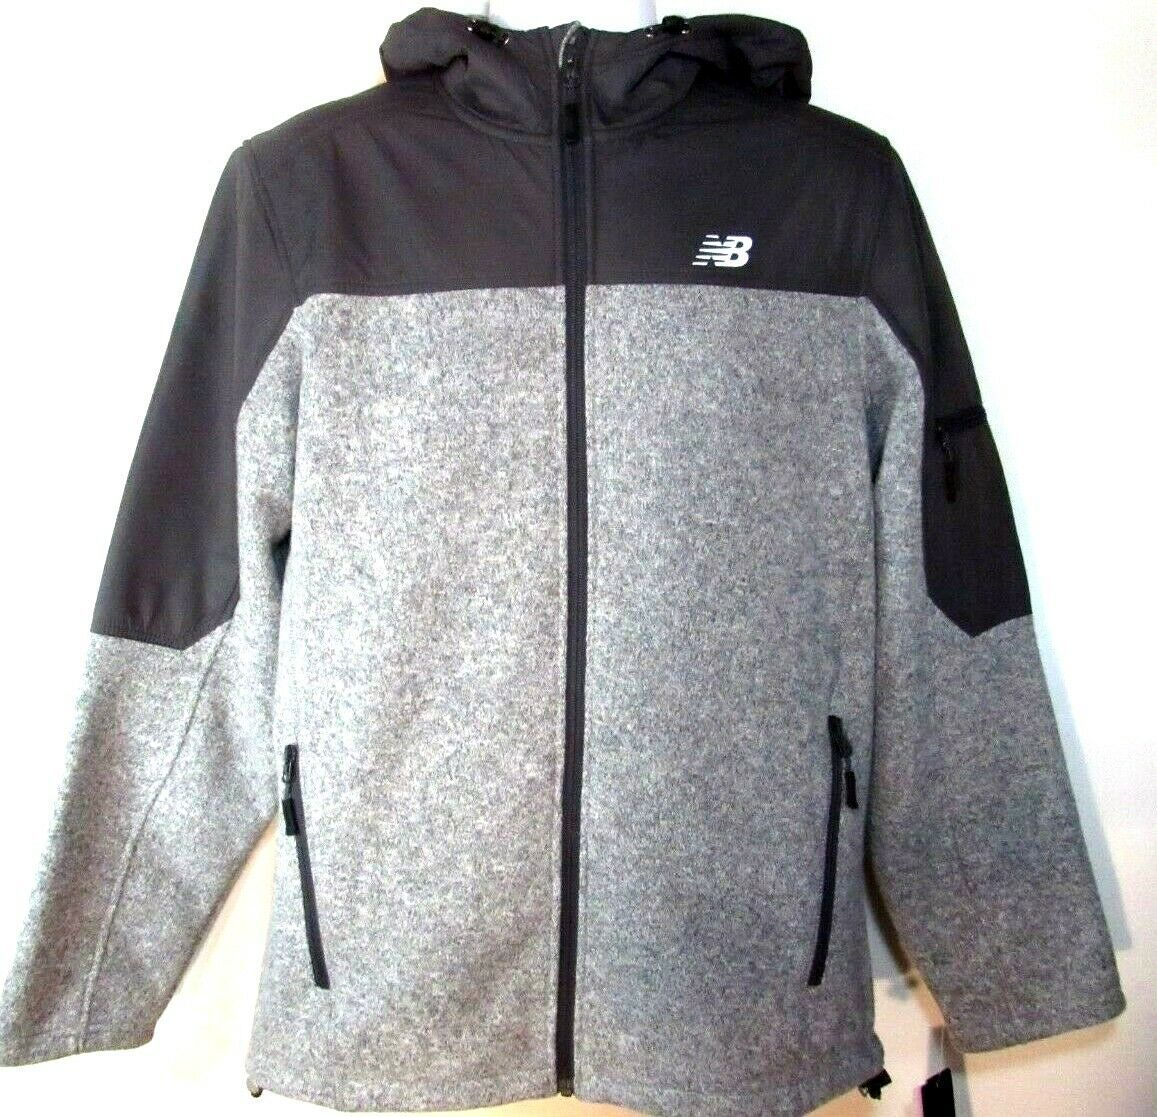 Primary image for NEW BALANCE MEN'S GRAY FLEECE FULL ZIP HOODED SWEATER, #NBMJ8401-HG